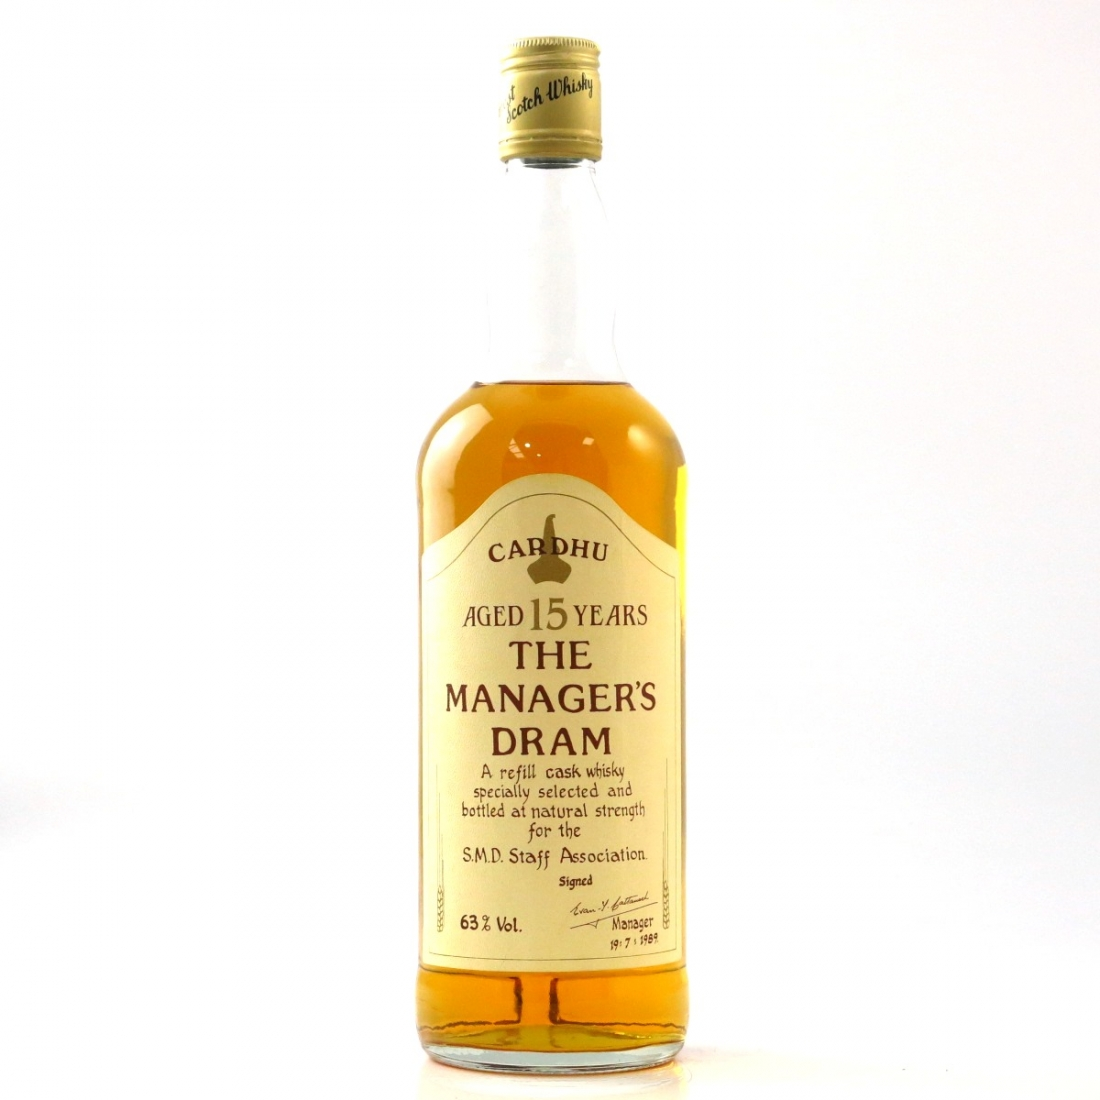 Cardhu 15 Year Old Manager's Dram 1989